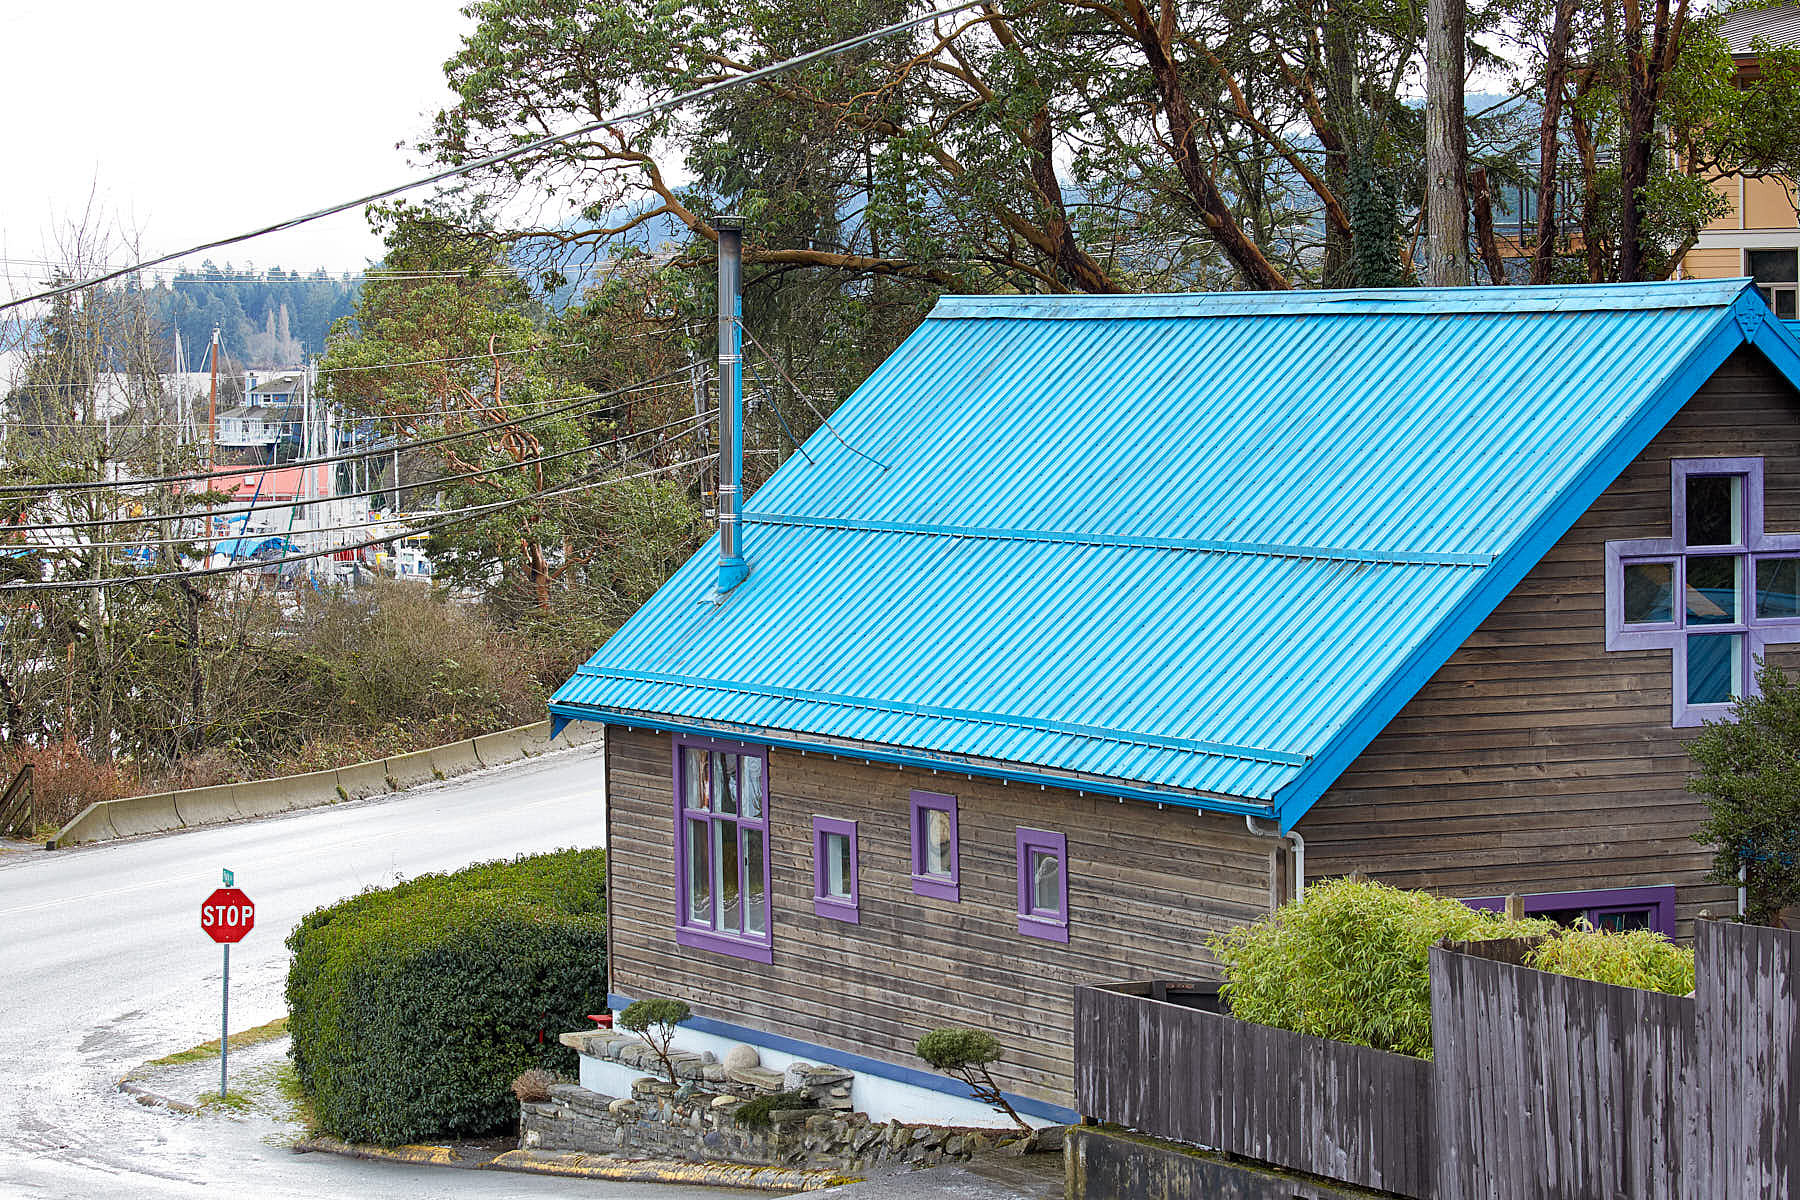 Single Family Home for Sale at Live~Work Studio Lifestyle 103 Park Drive Salt Spring Island, British Columbia, V8K 2R7 Canada